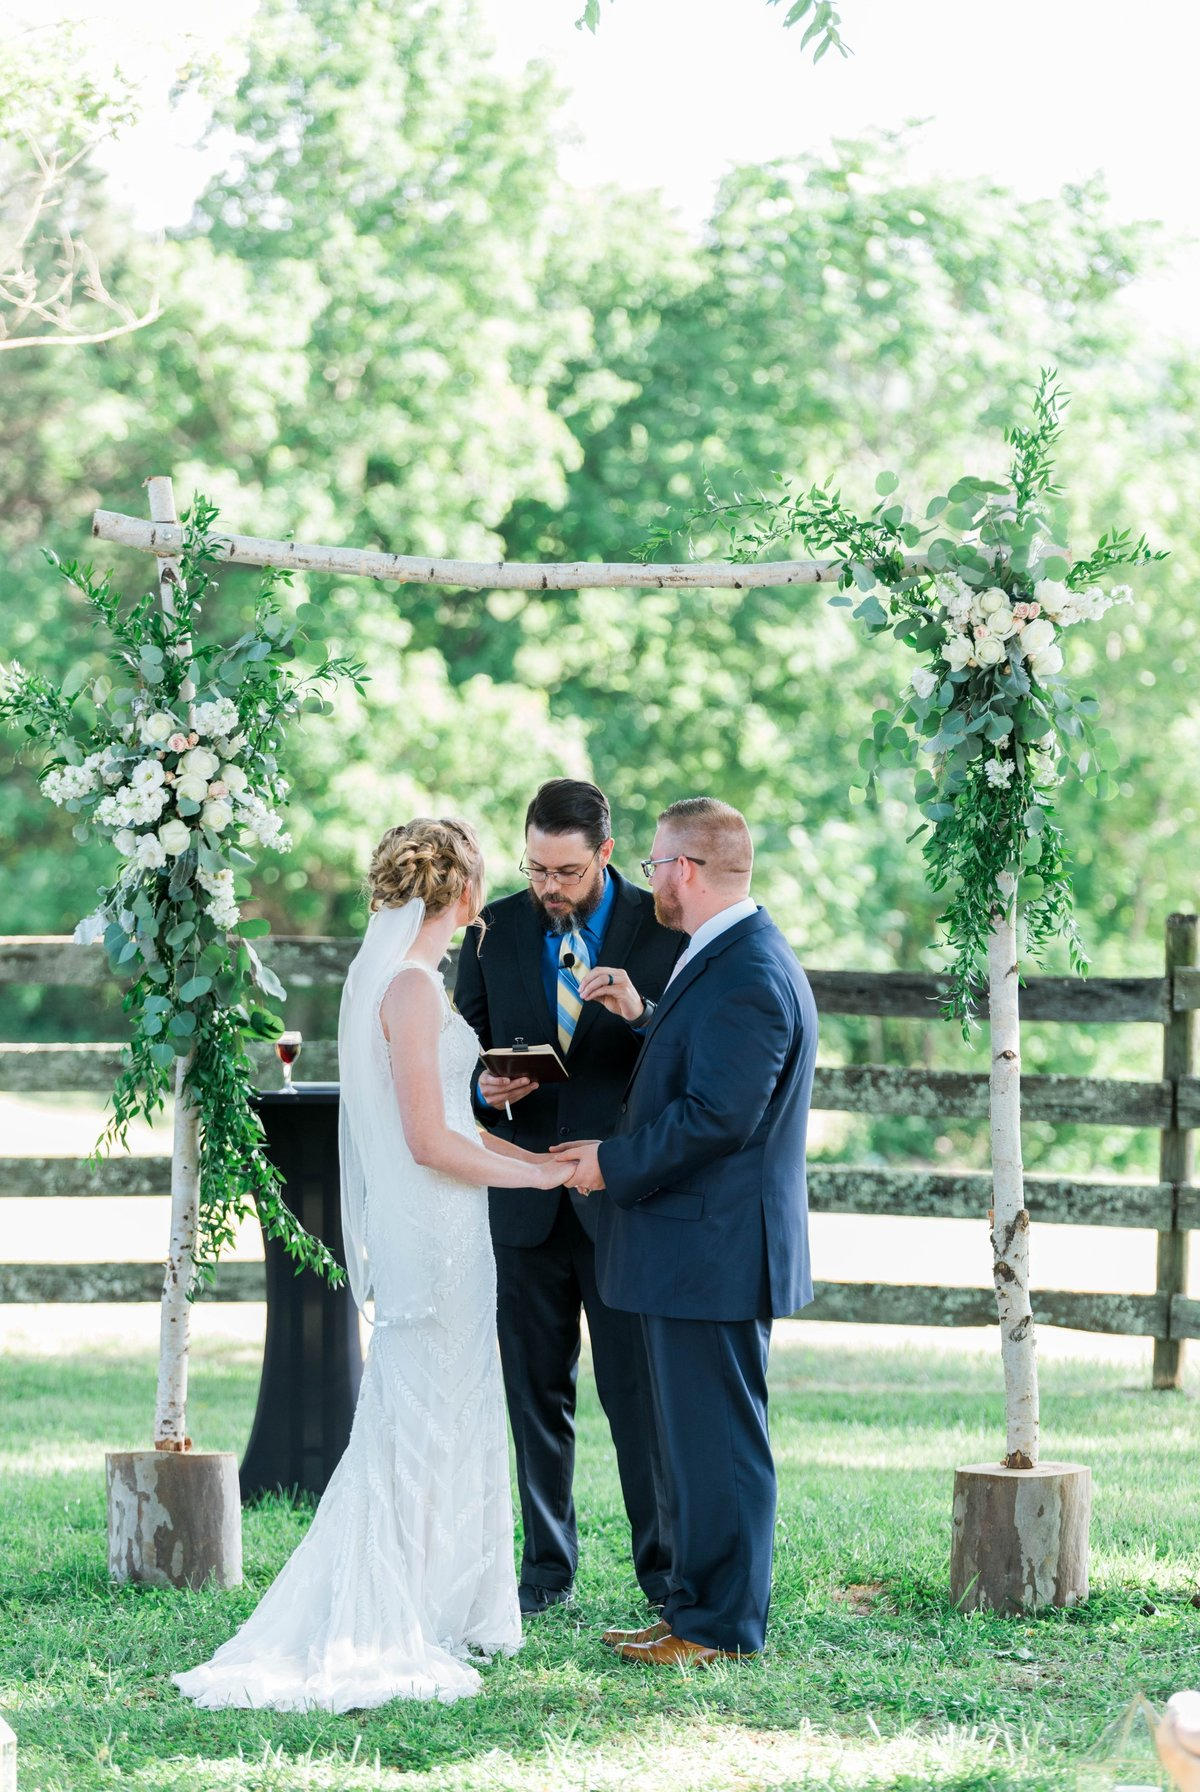 SorellaFarms_VirginiaWeddingPhotographer_BarnWedding_Lynchburgweddingphotographer_DanielleTyler+42(1)